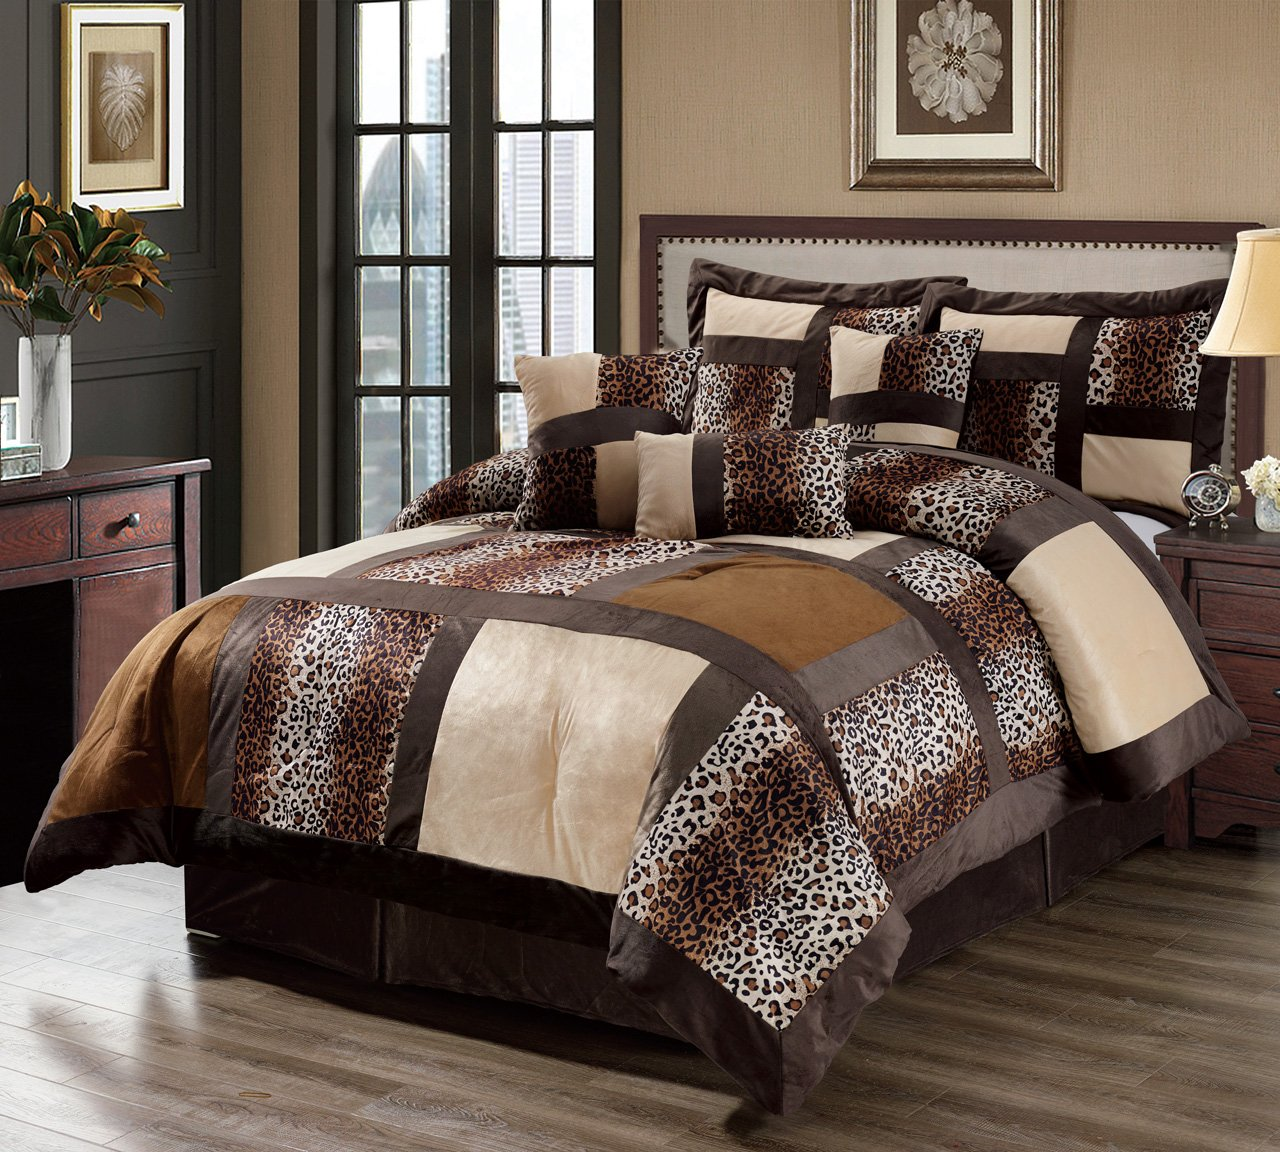 KingLinen 7 Piece Queen Leopard Patchwork Faux Fur Microfiber Comforter Set